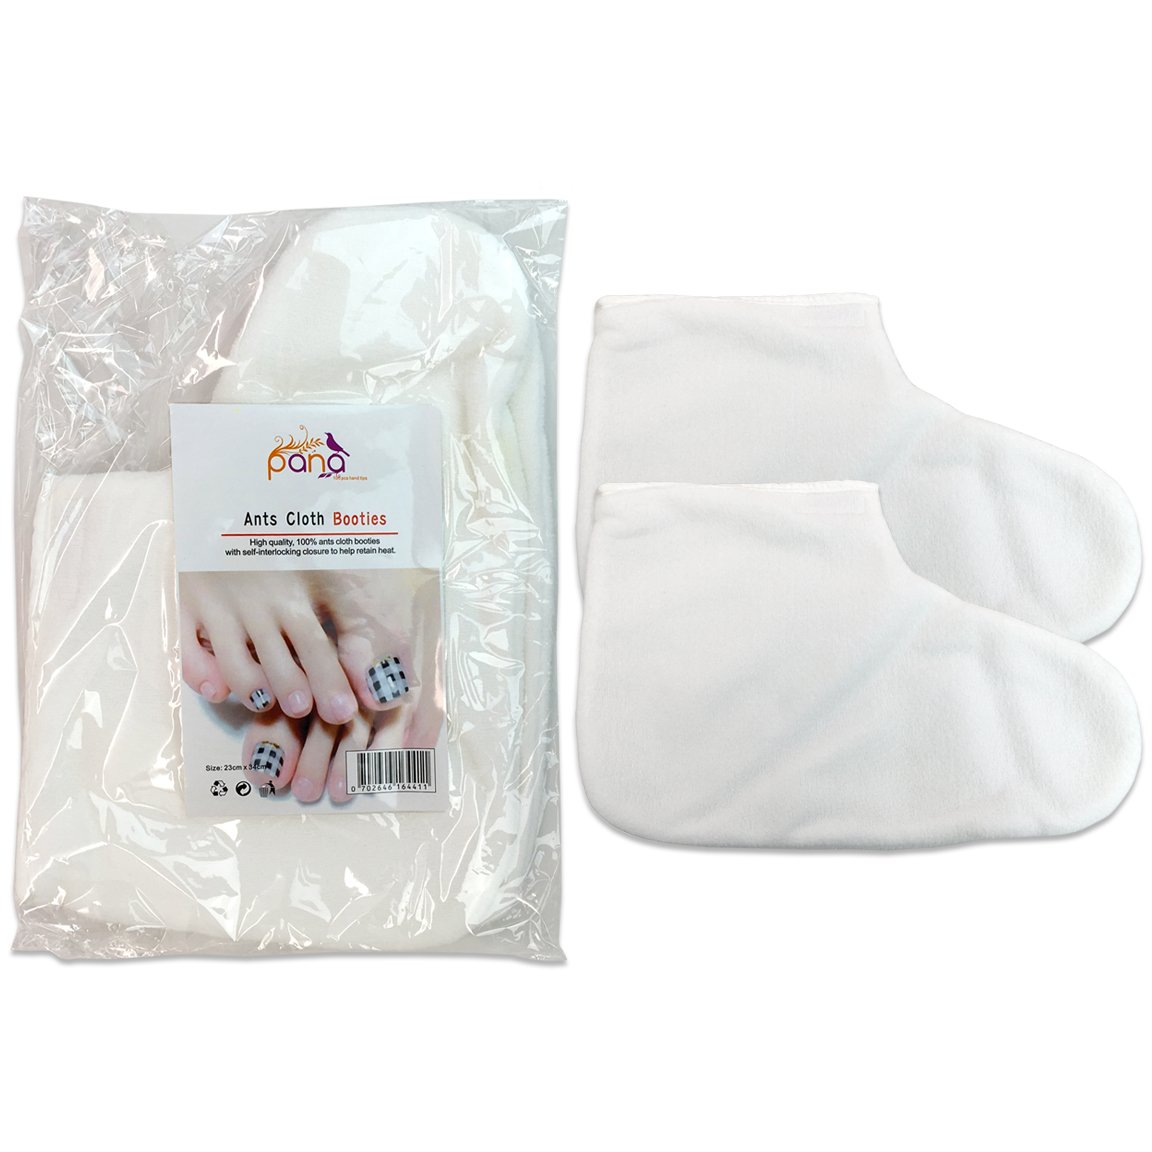 Pana Brand ReusableWHITE Thermal Cloth Insulated Booties for Paraffin Wax Heat Therapy Spa Treatments/Self Tanning